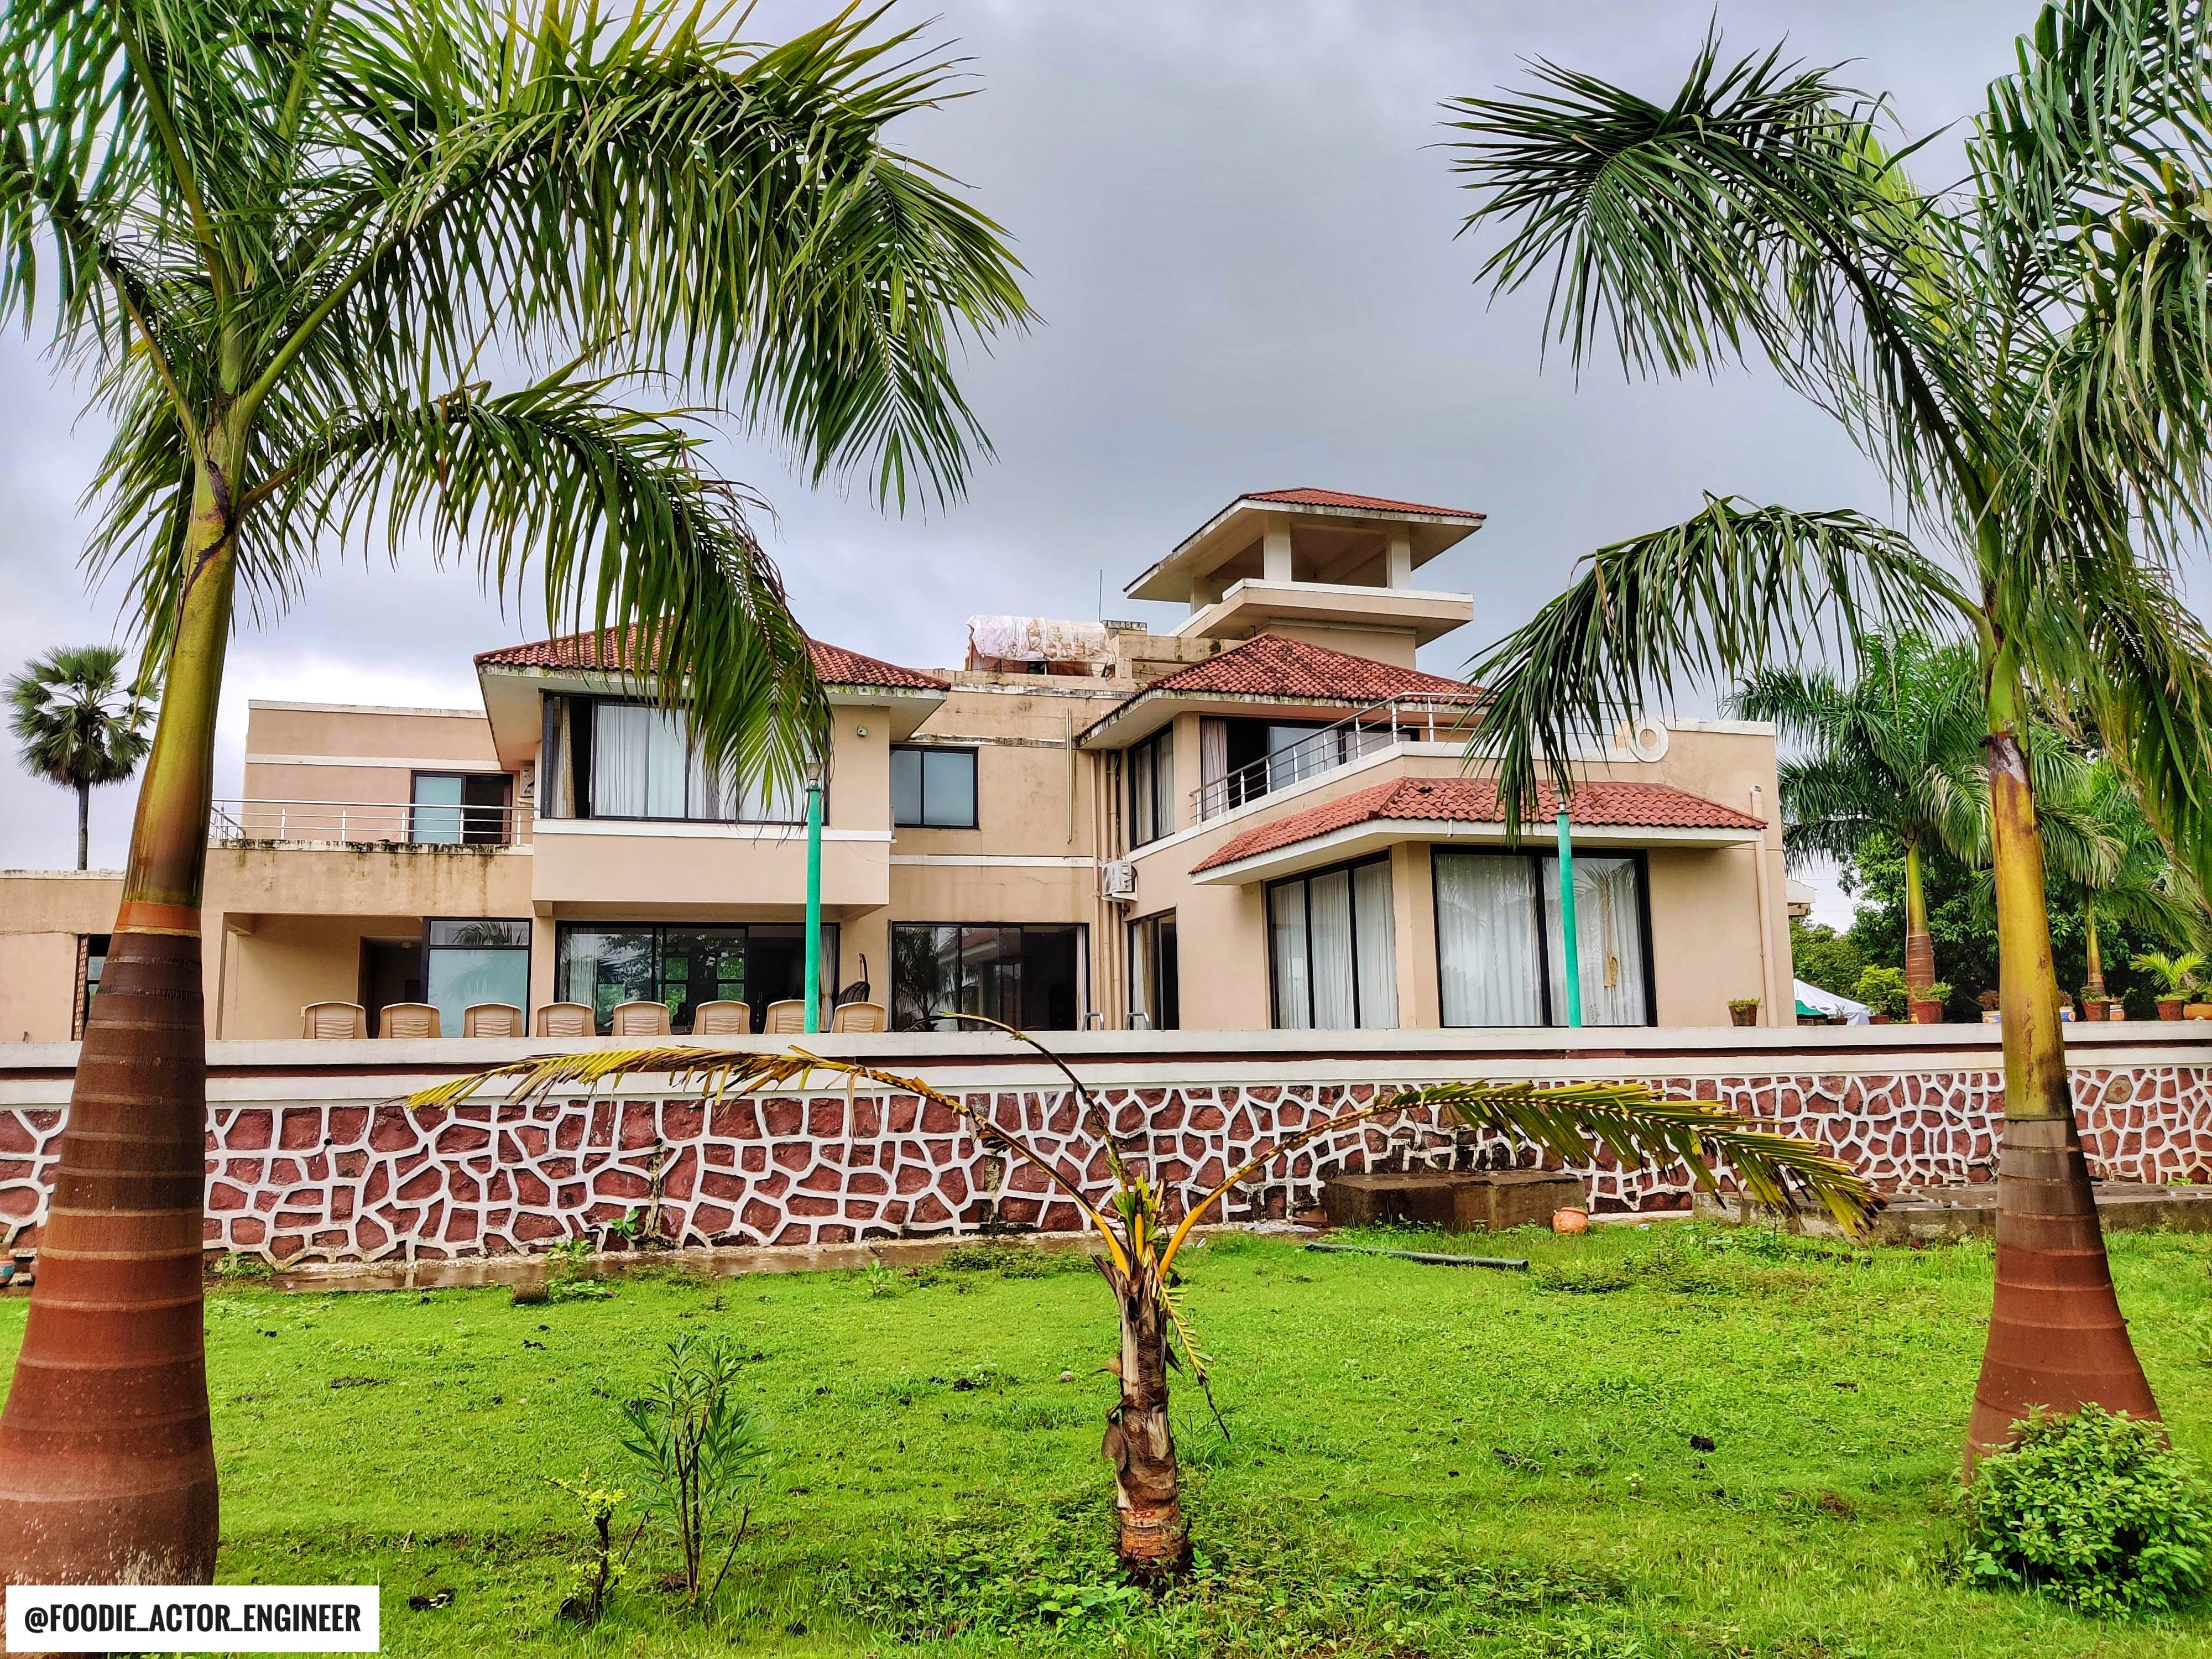 Drop In At This Beautiful Farmhouse In The Blissfull Locales Of Dahanu